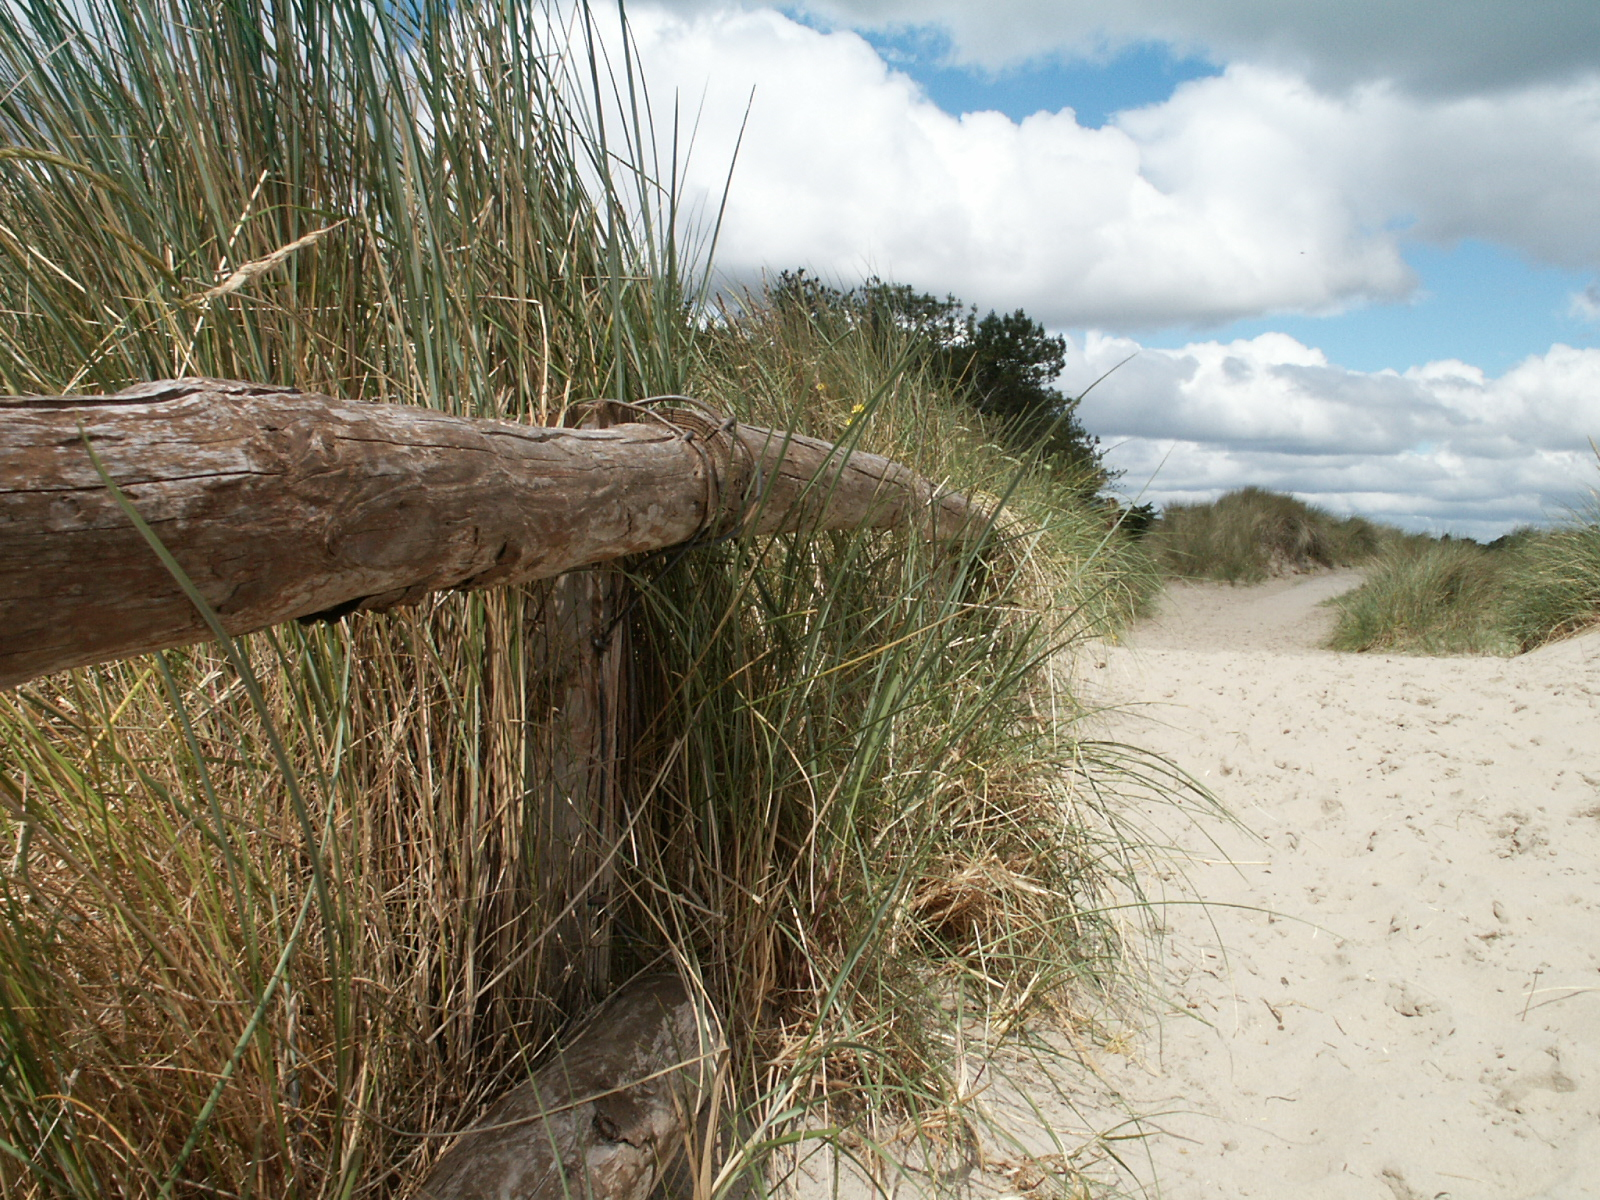 Photograph of Curracloe County Wexford